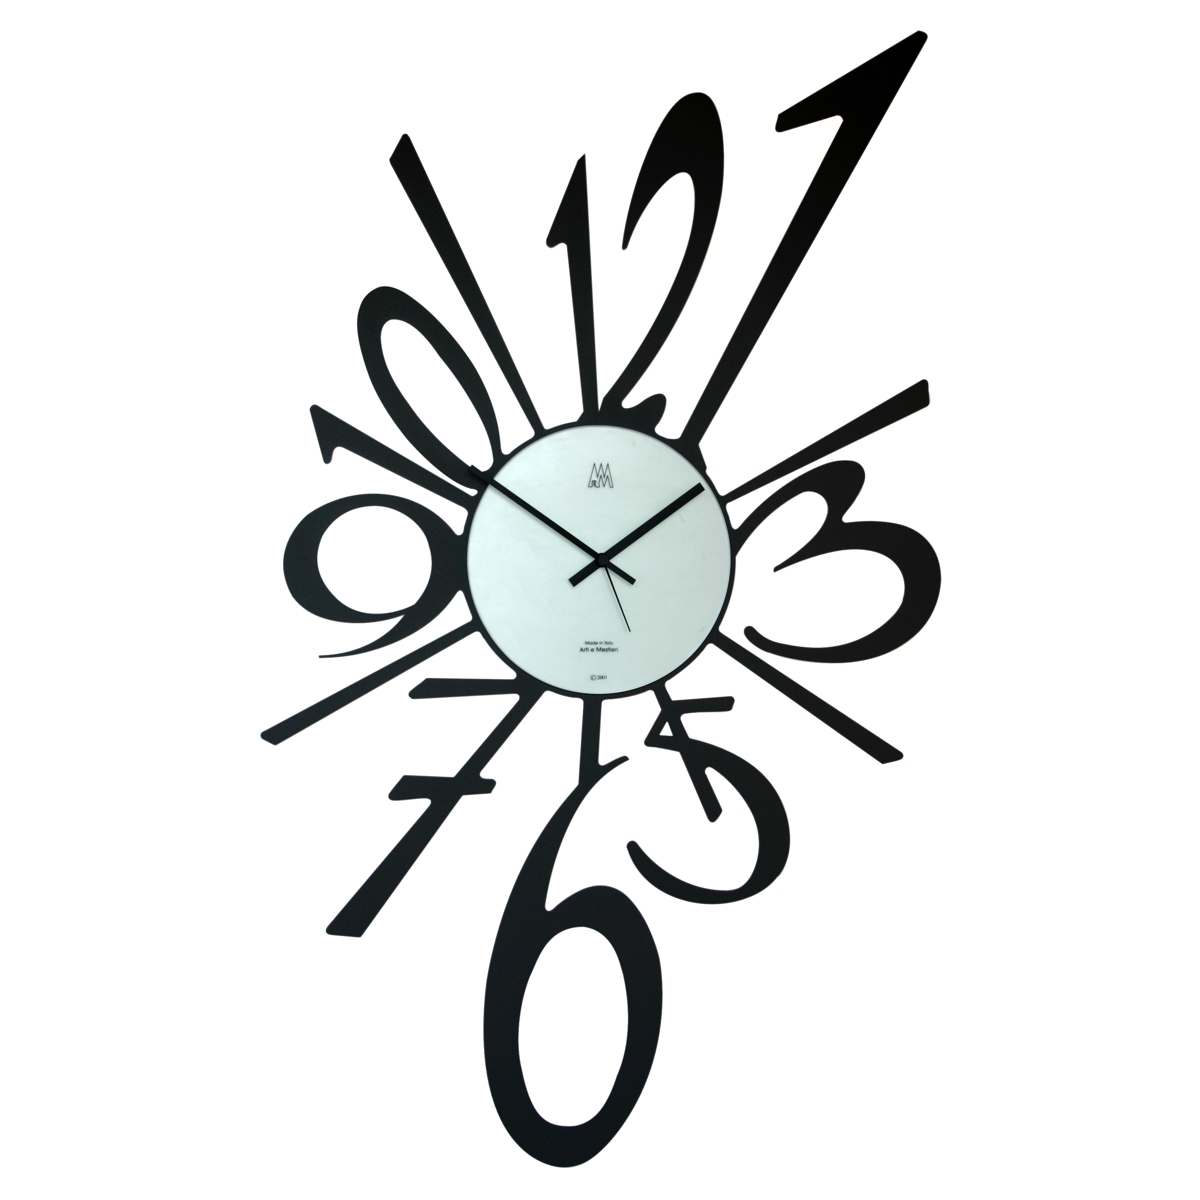 Arti & Mestieri Big Bang Clock Black H55cm x W31cm